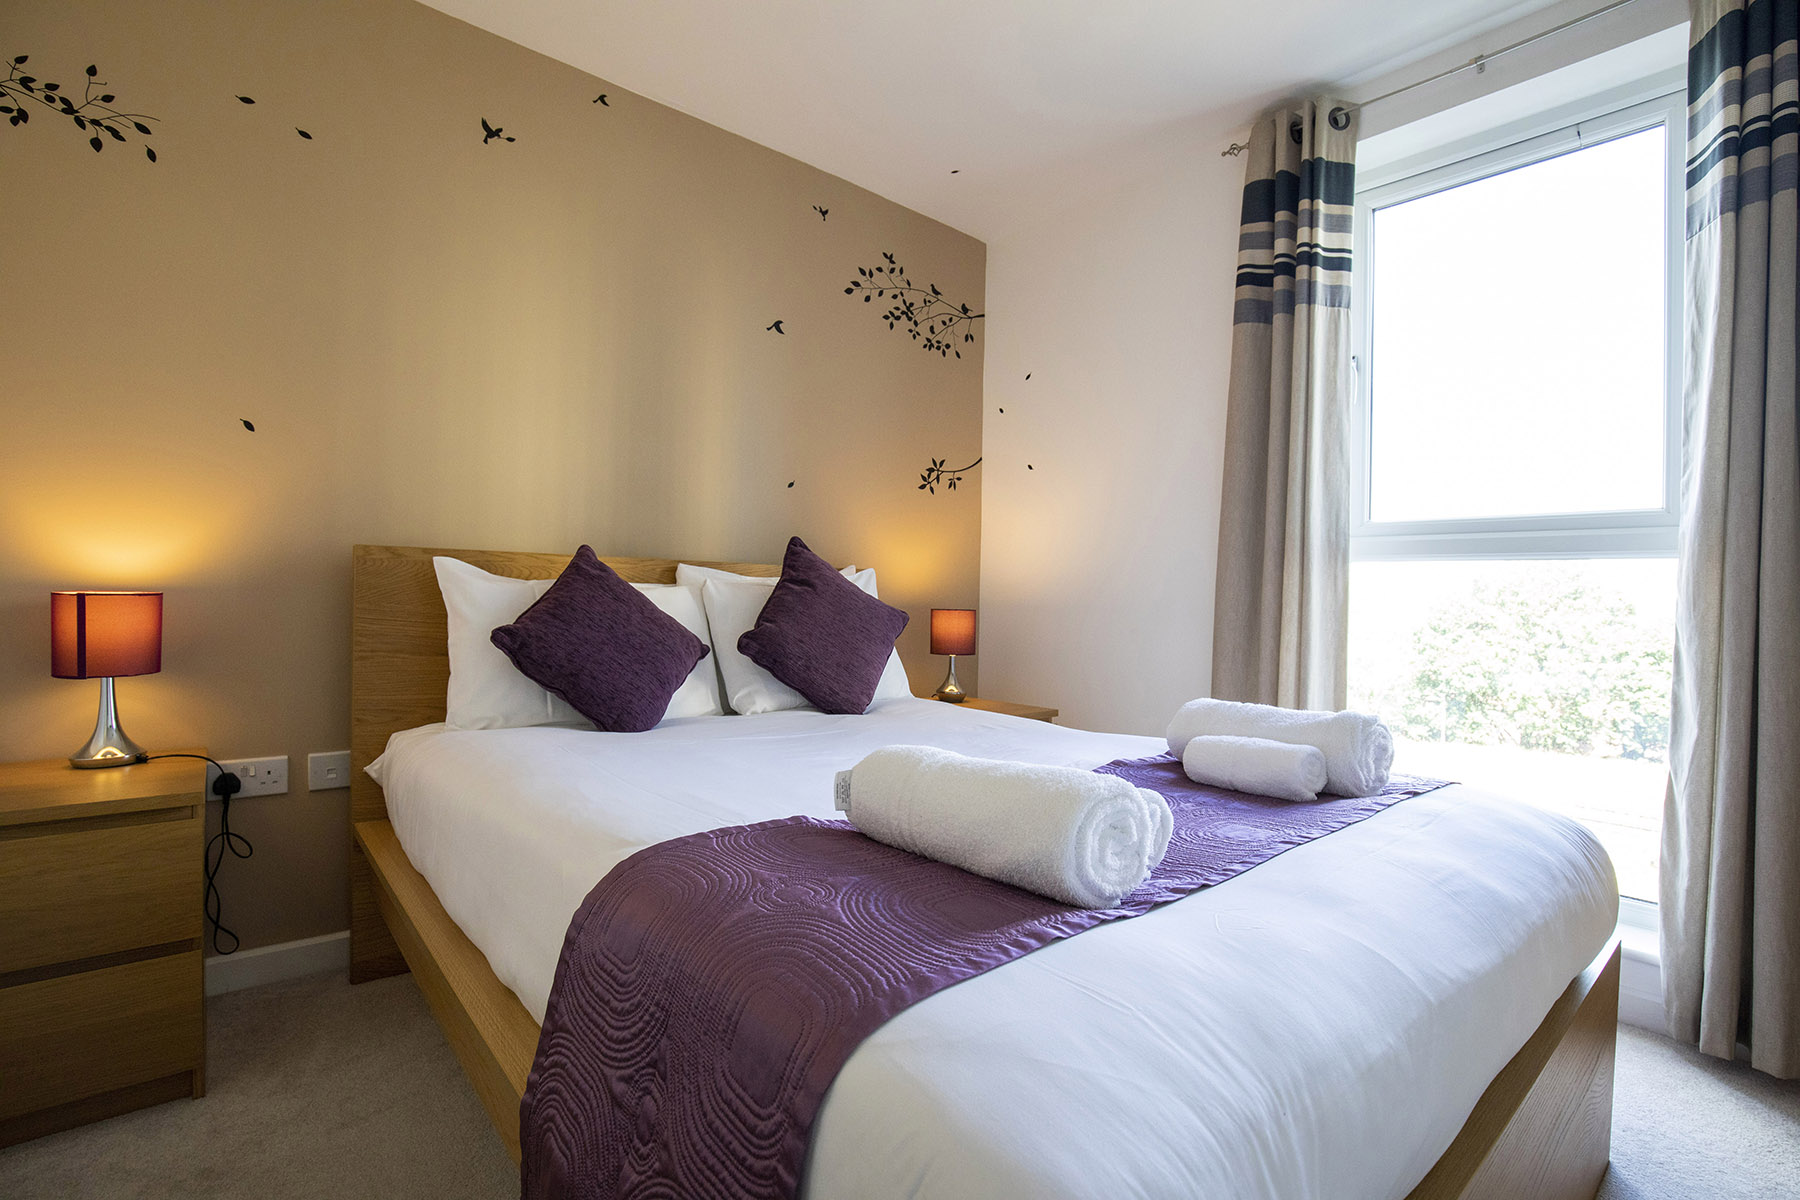 Bedroom at New Central Apartments, Centre, Woking - Citybase Apartments